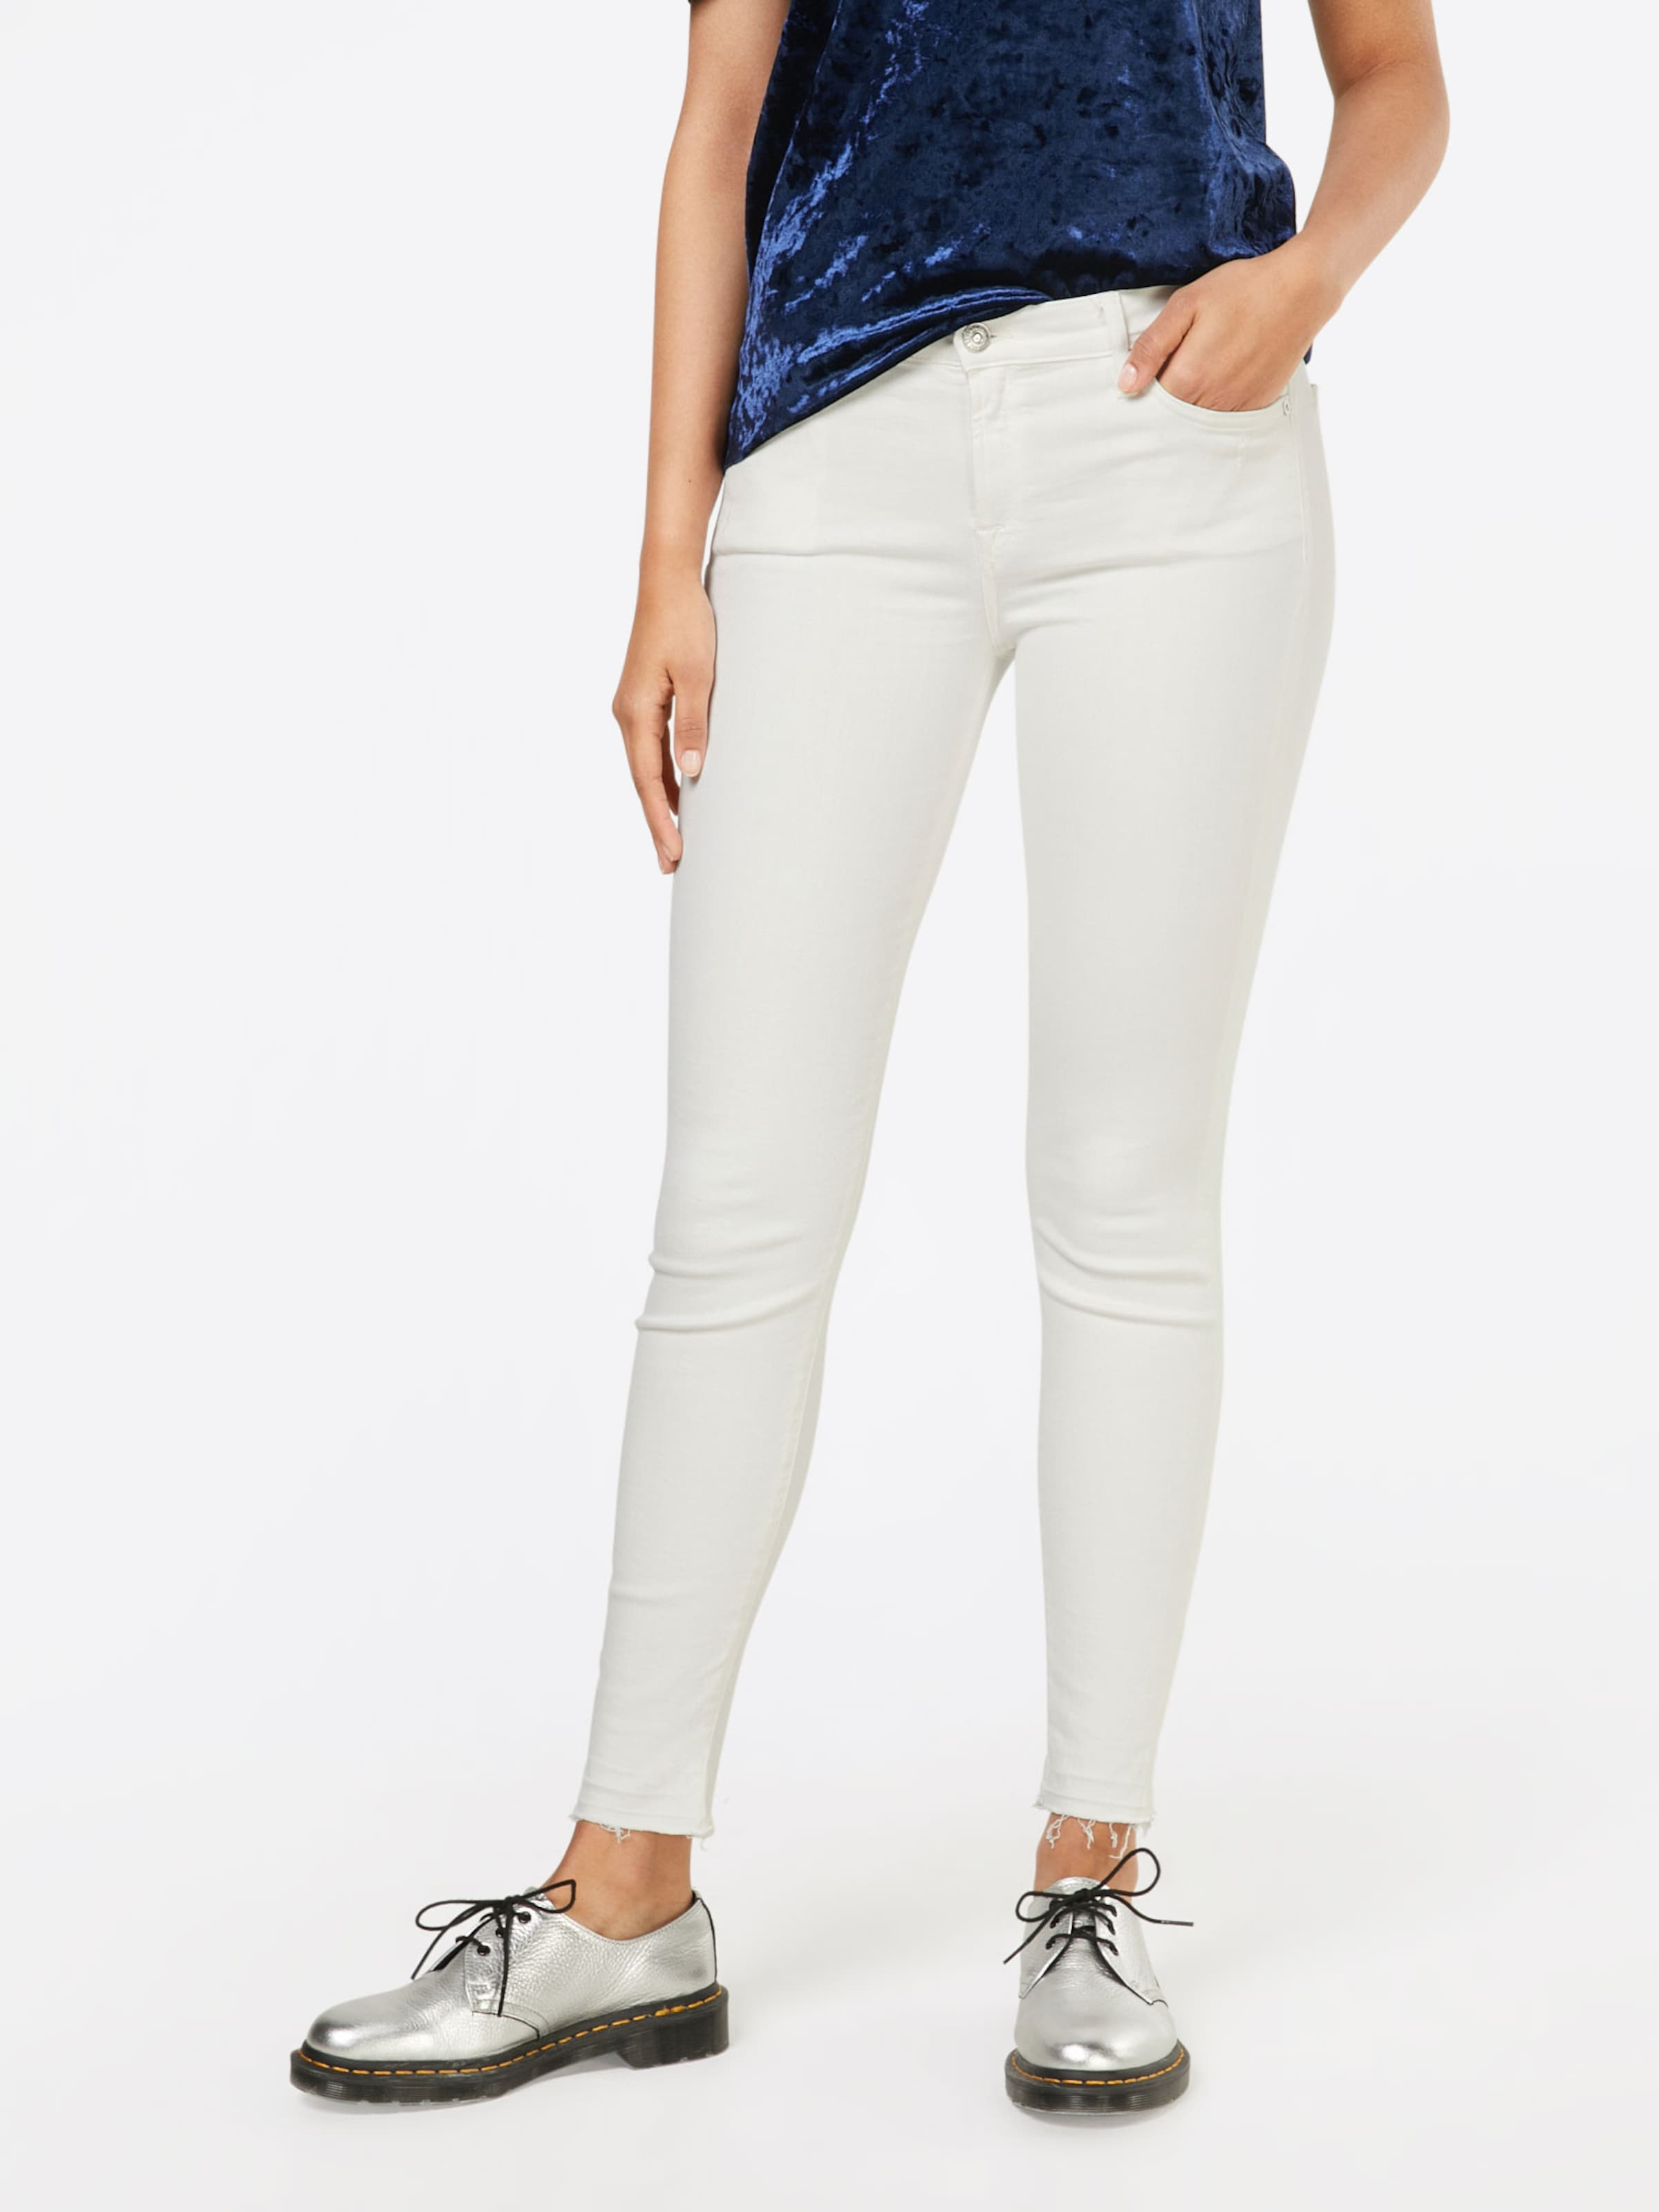 CROP' for Jeans mankind 'THE 7 7 all for SKINNY BO78Rx